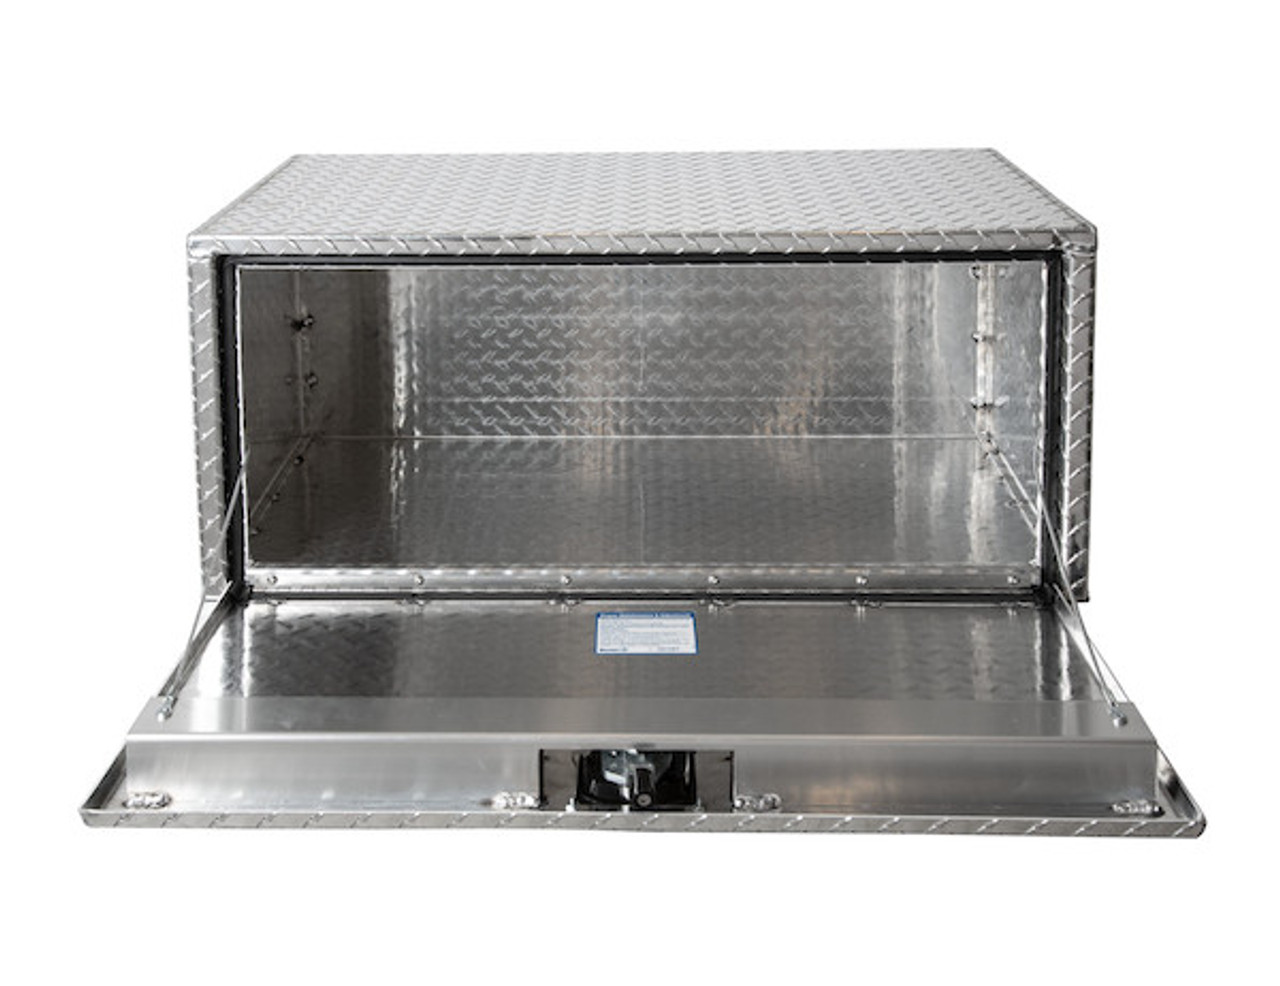 "1705105 BUYERS PRODUCTS DIAMOND TREAD ALUMINUM UNDERBODY TRUCK TOOLBOX 18""HX18""DX36""W"